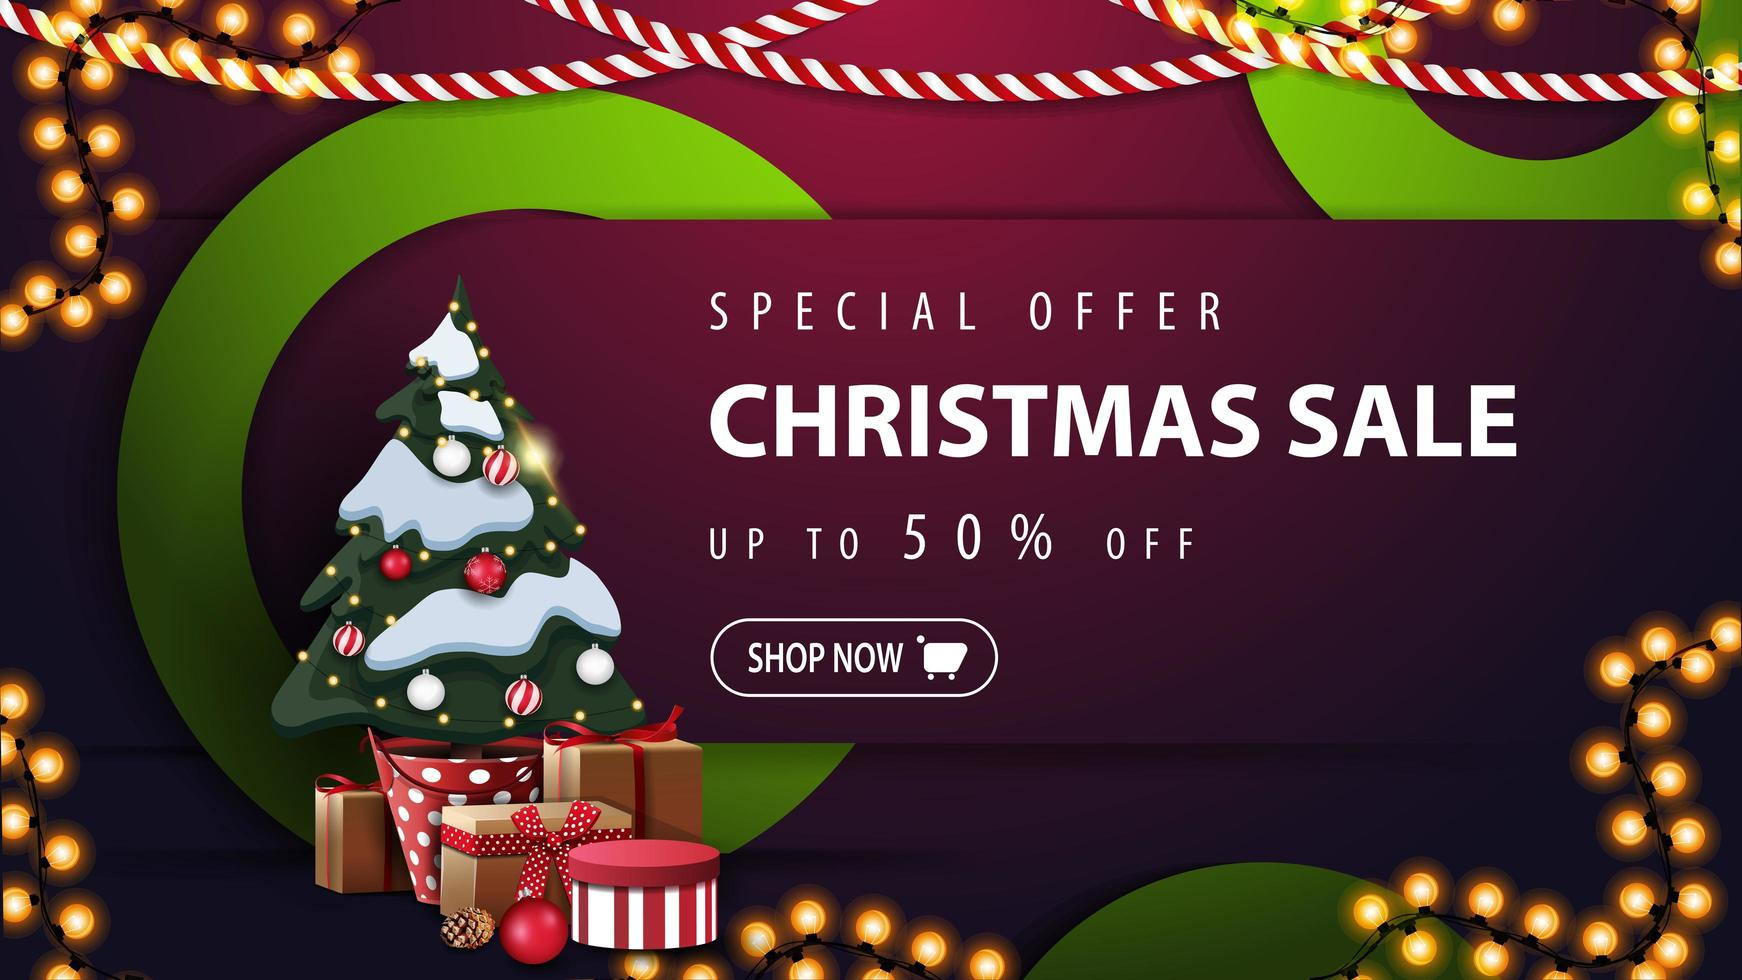 Special offer, Christmas sale, up to 50 off, purple discount banner with green decorative rings, garlands and Christmas tree in a pot with gifts vector